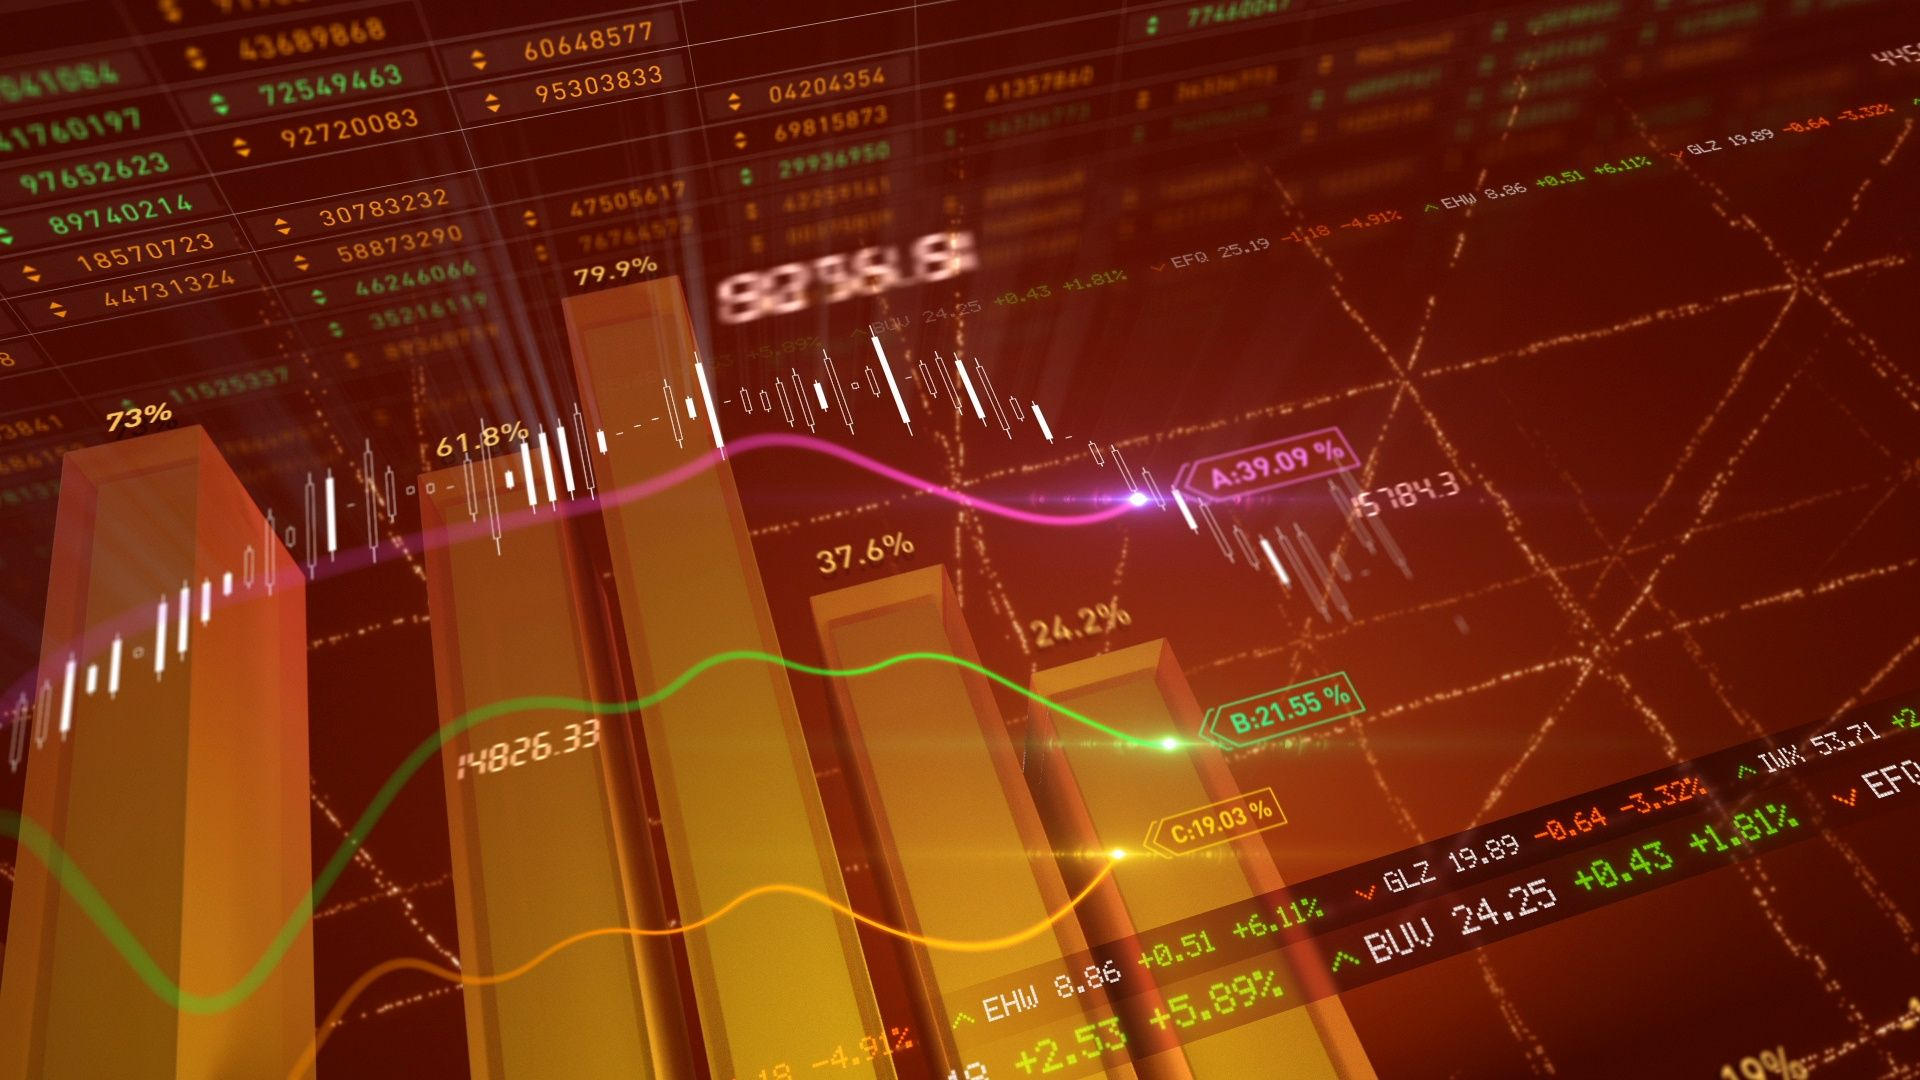 Abstract Business Stock Market Data Animation With Generic Corporate Data Stock Footage Market Data Stock Abstract Stock Market Data Stock Market Marketing